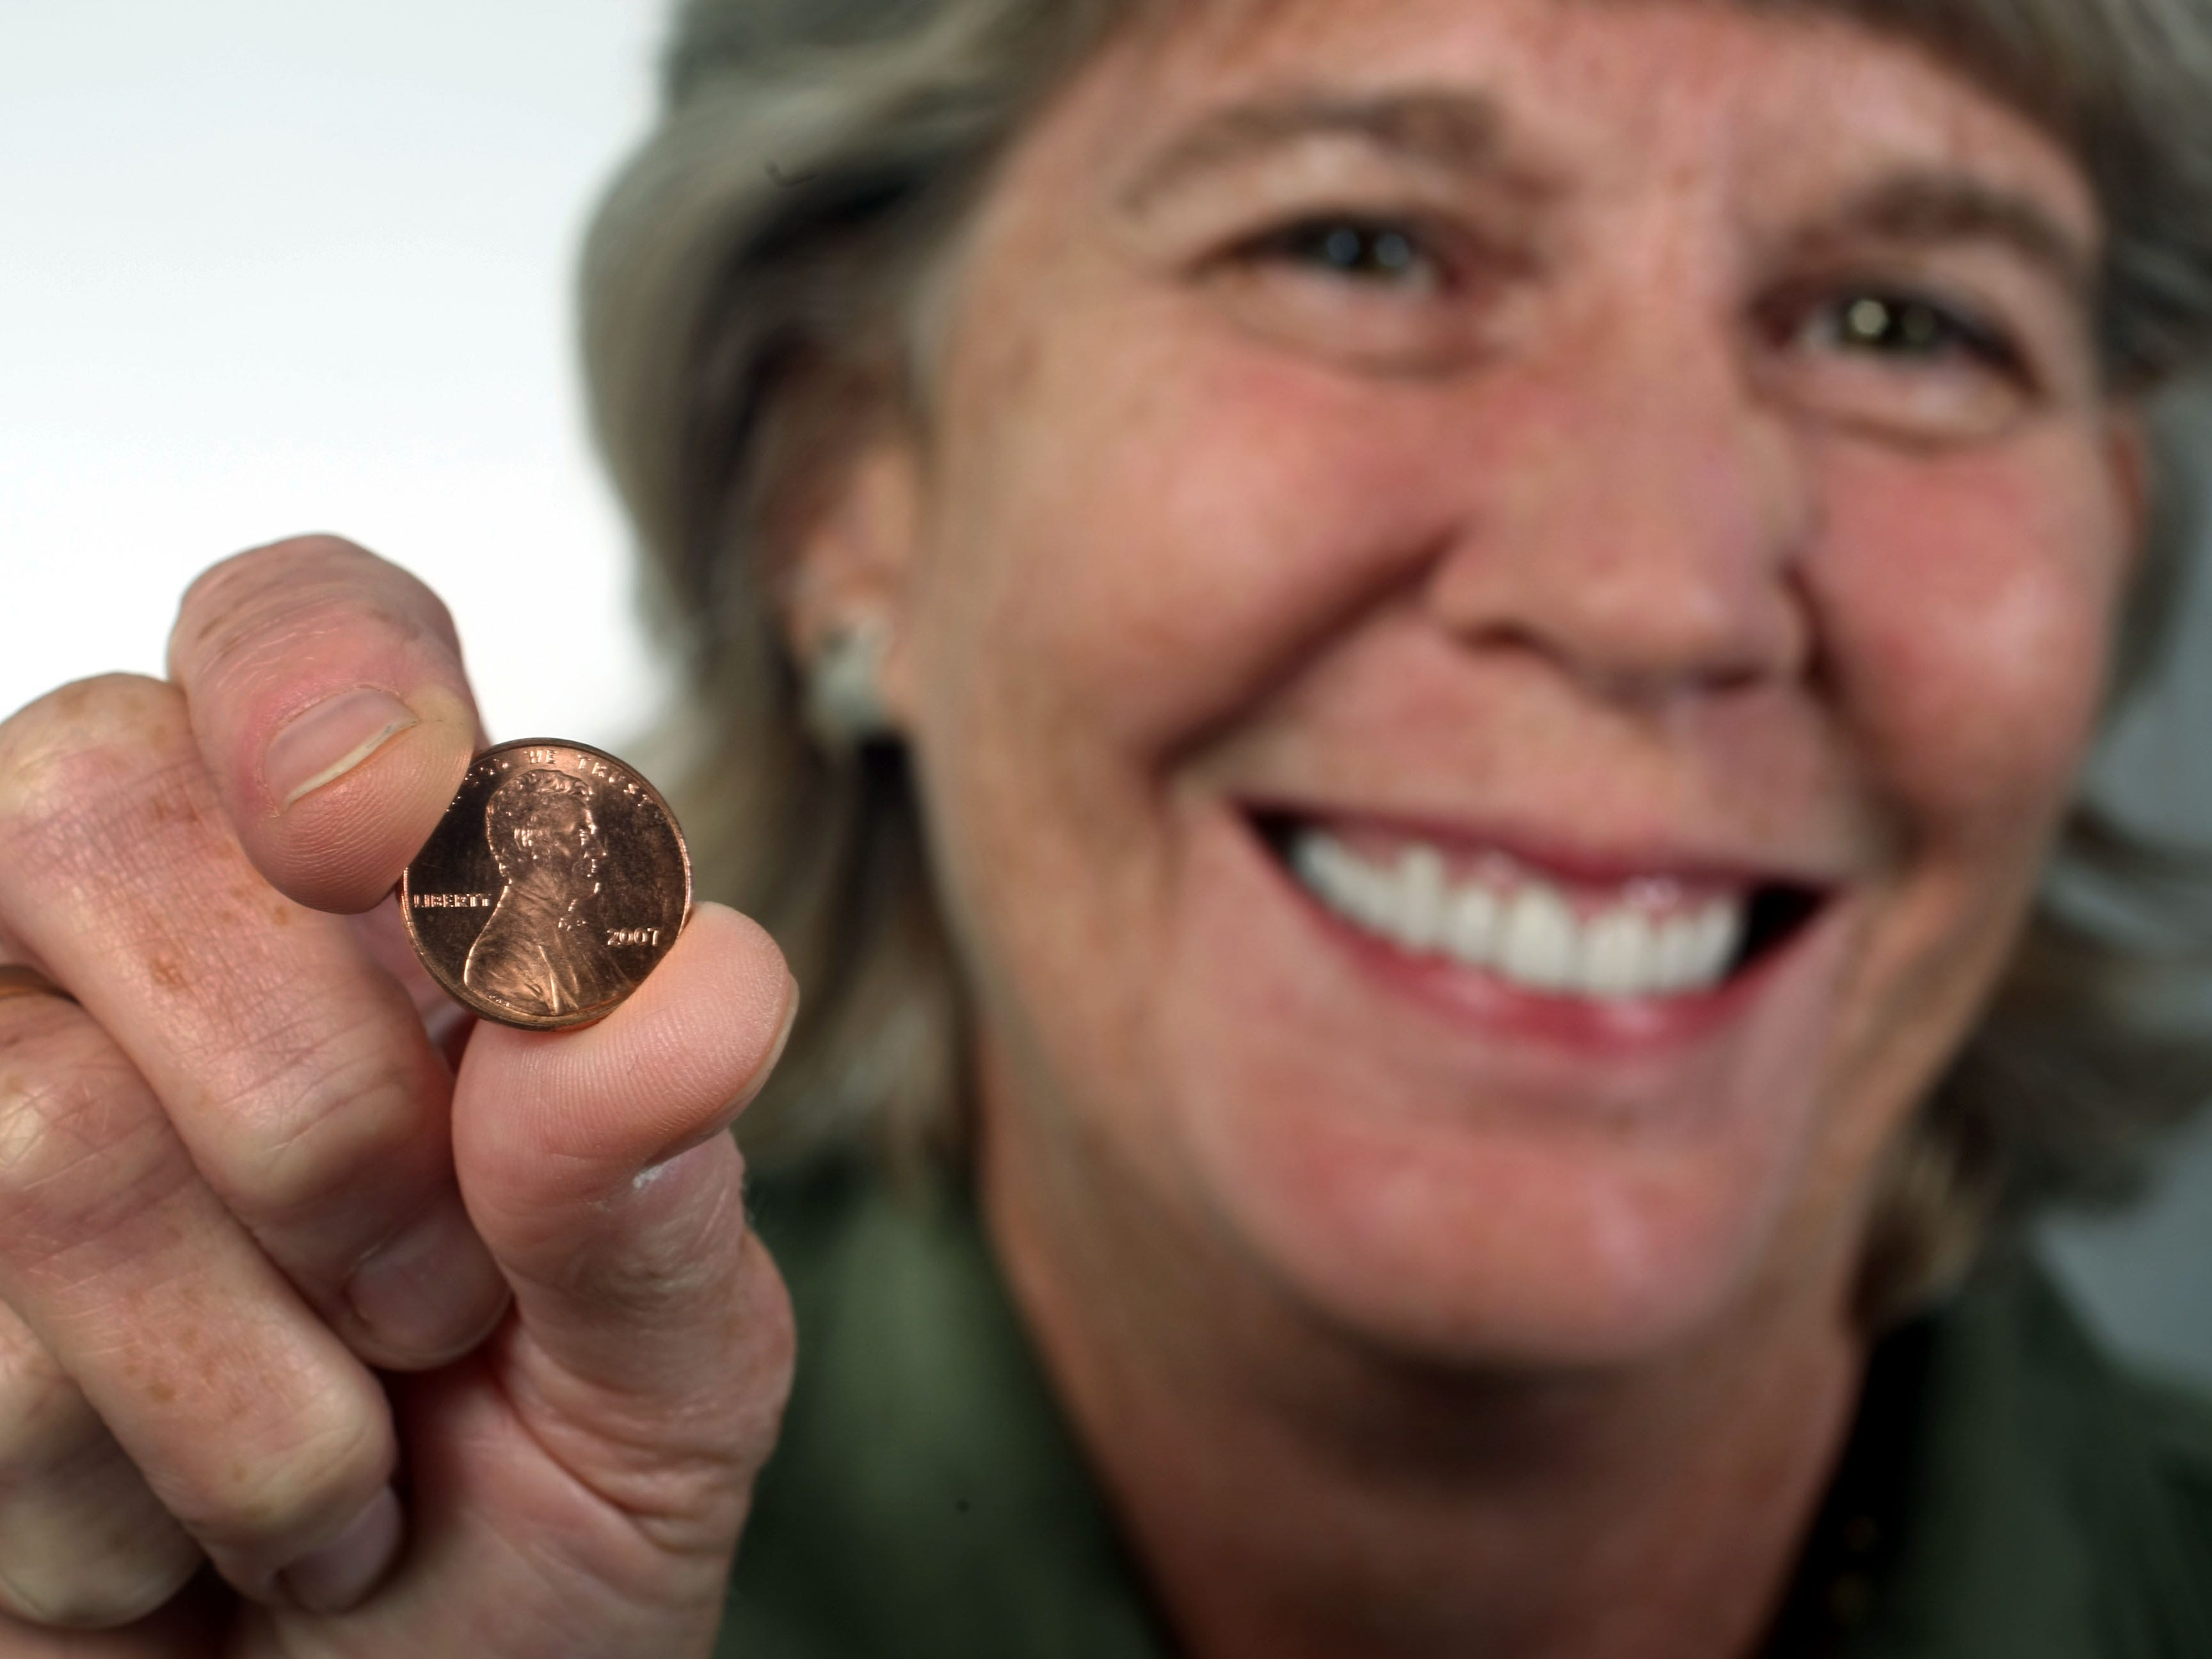 Mary Hance, aka Ms. Cheap, poses with a penny in the studio Sept. 30, 2009. She was promoting her Penny Drive, during which she asks readers for their pennies for Second Harvest Food Bank.